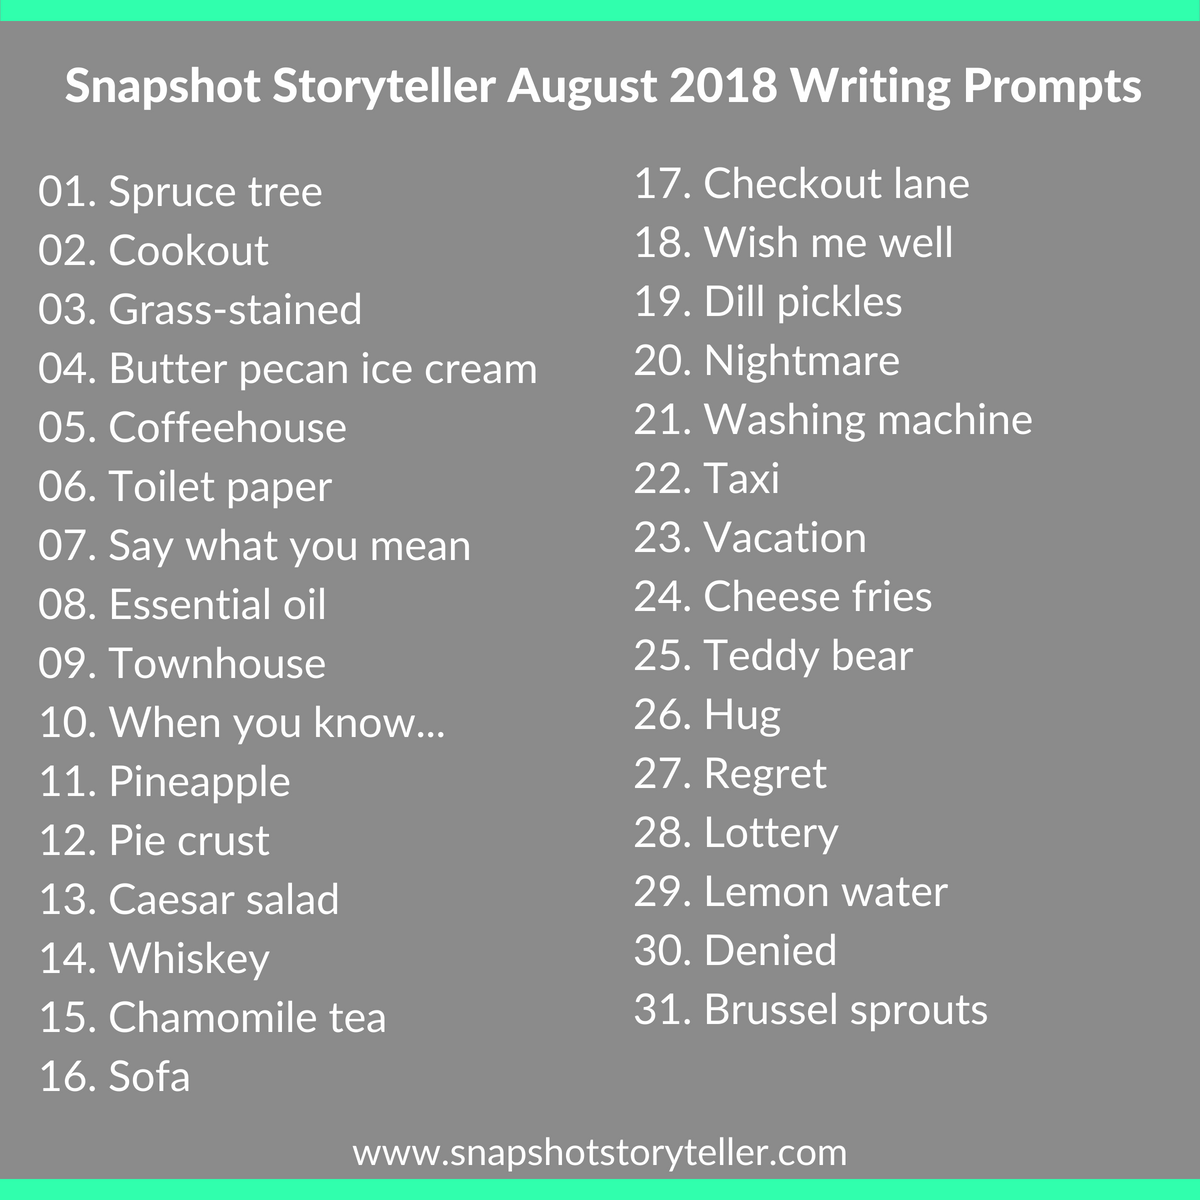 Snapshot Storyteller: August 2018 Writing Prompts -- Flex your imagination on these prompts! | www.snapshotstoryteller.com #amwriting #snapshotstoryteller #creativestoryteller #creative #storyteller #creativewriter #IWrite #WriteOn #writingprompts #writingprompt